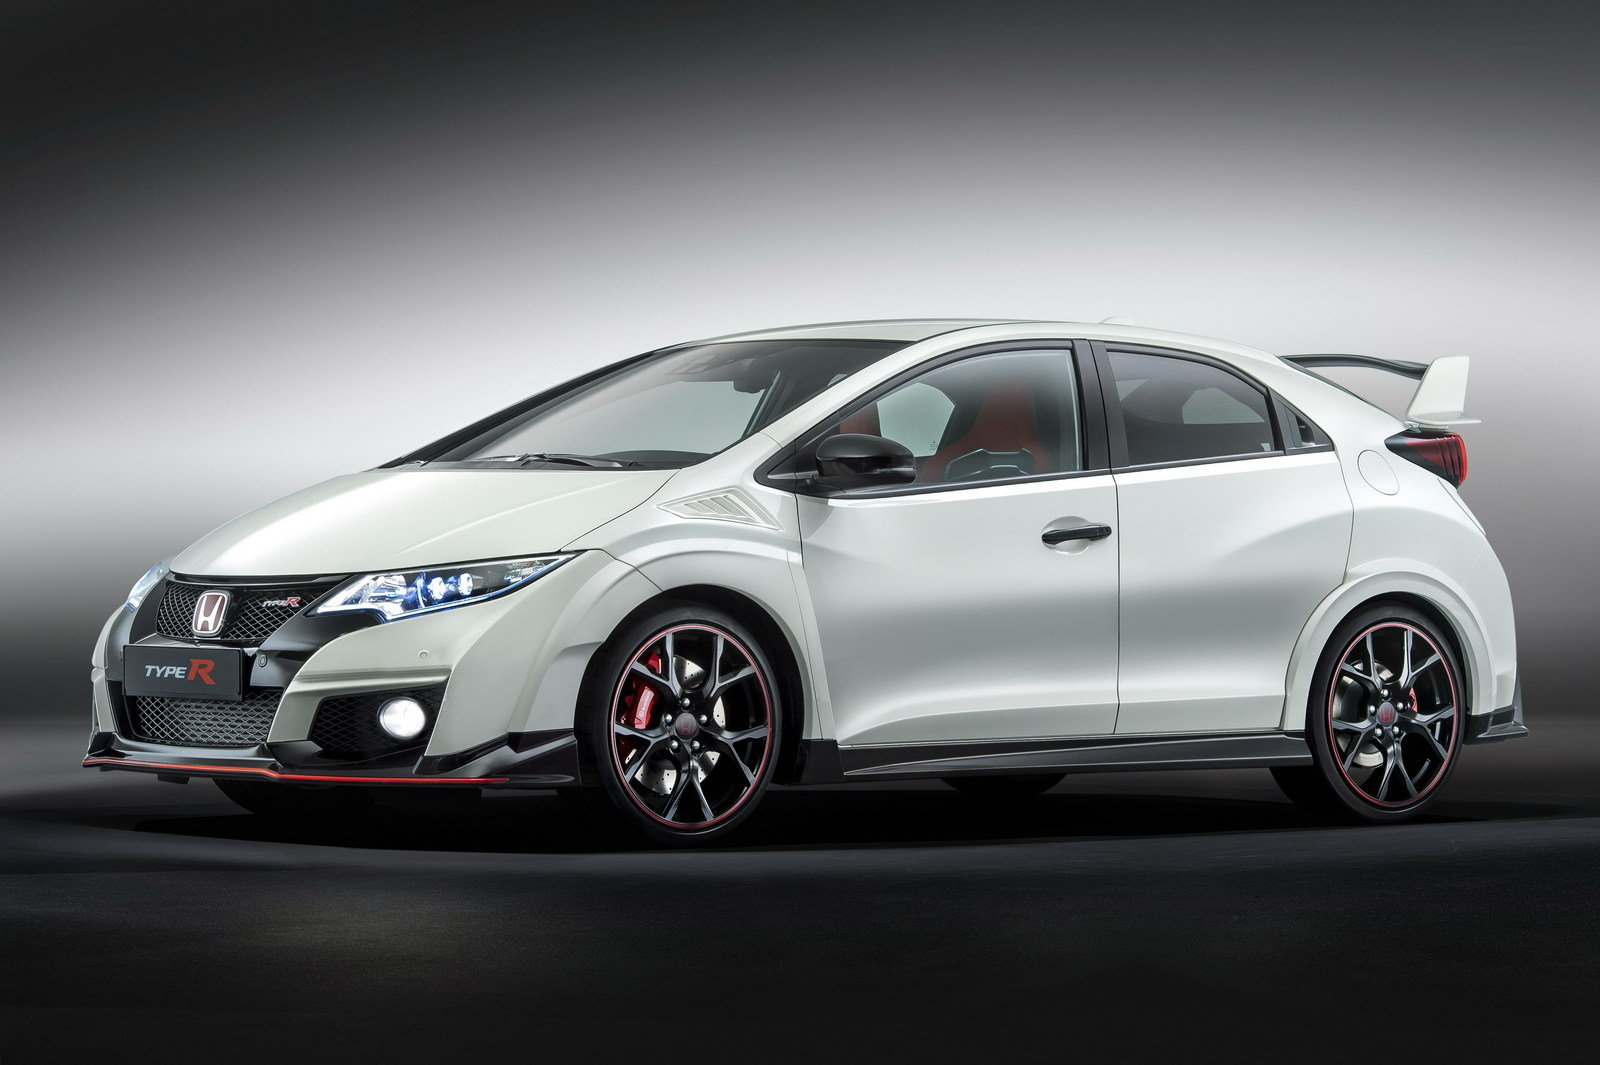 2016 honda civic type r picture 619532 car review top speed. Black Bedroom Furniture Sets. Home Design Ideas